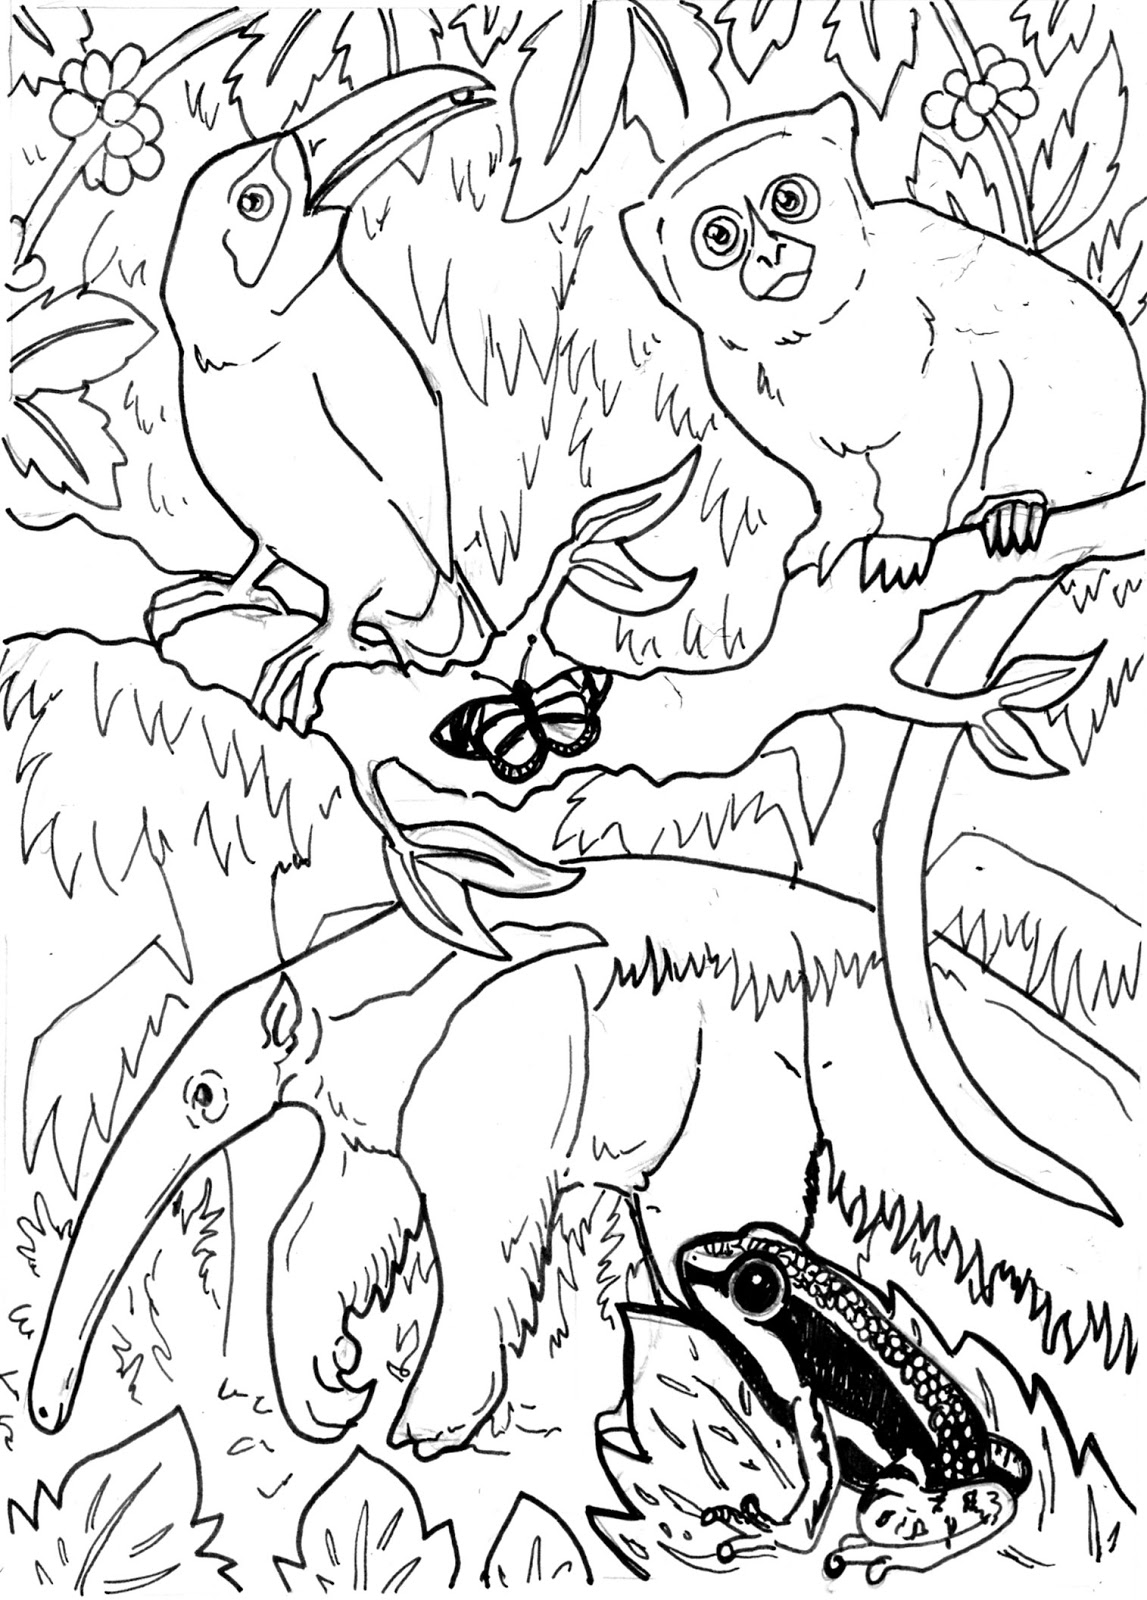 rainforest animal coloring pages - photo#28